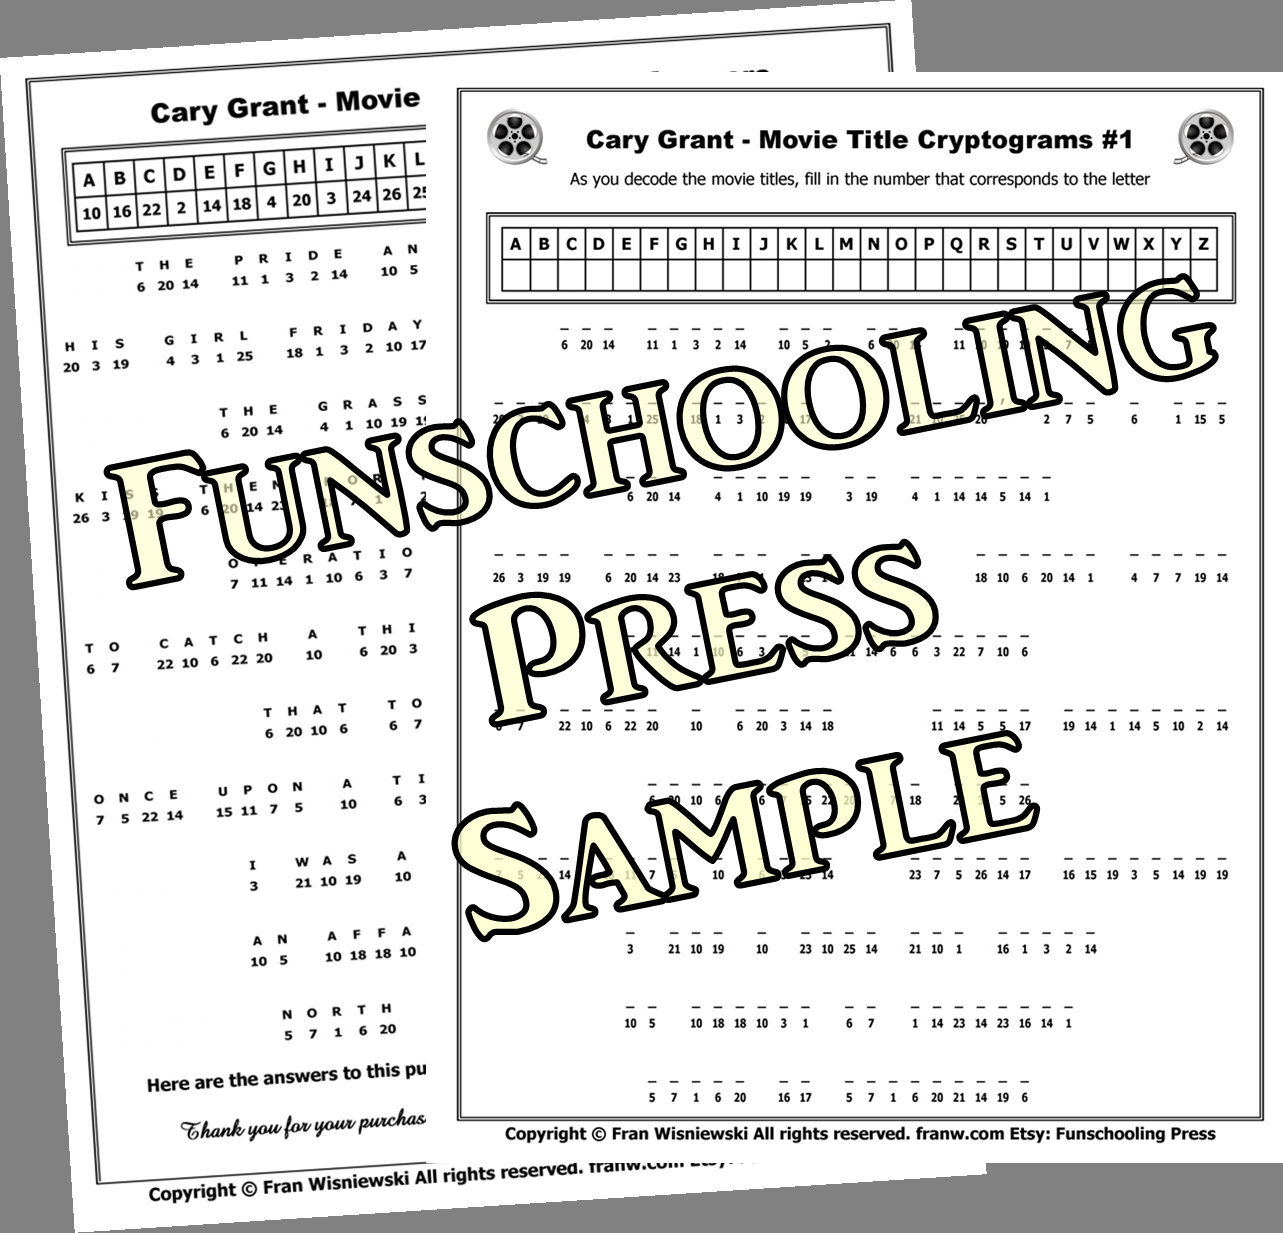 Decisive Free Printable Cryptograms With Answers